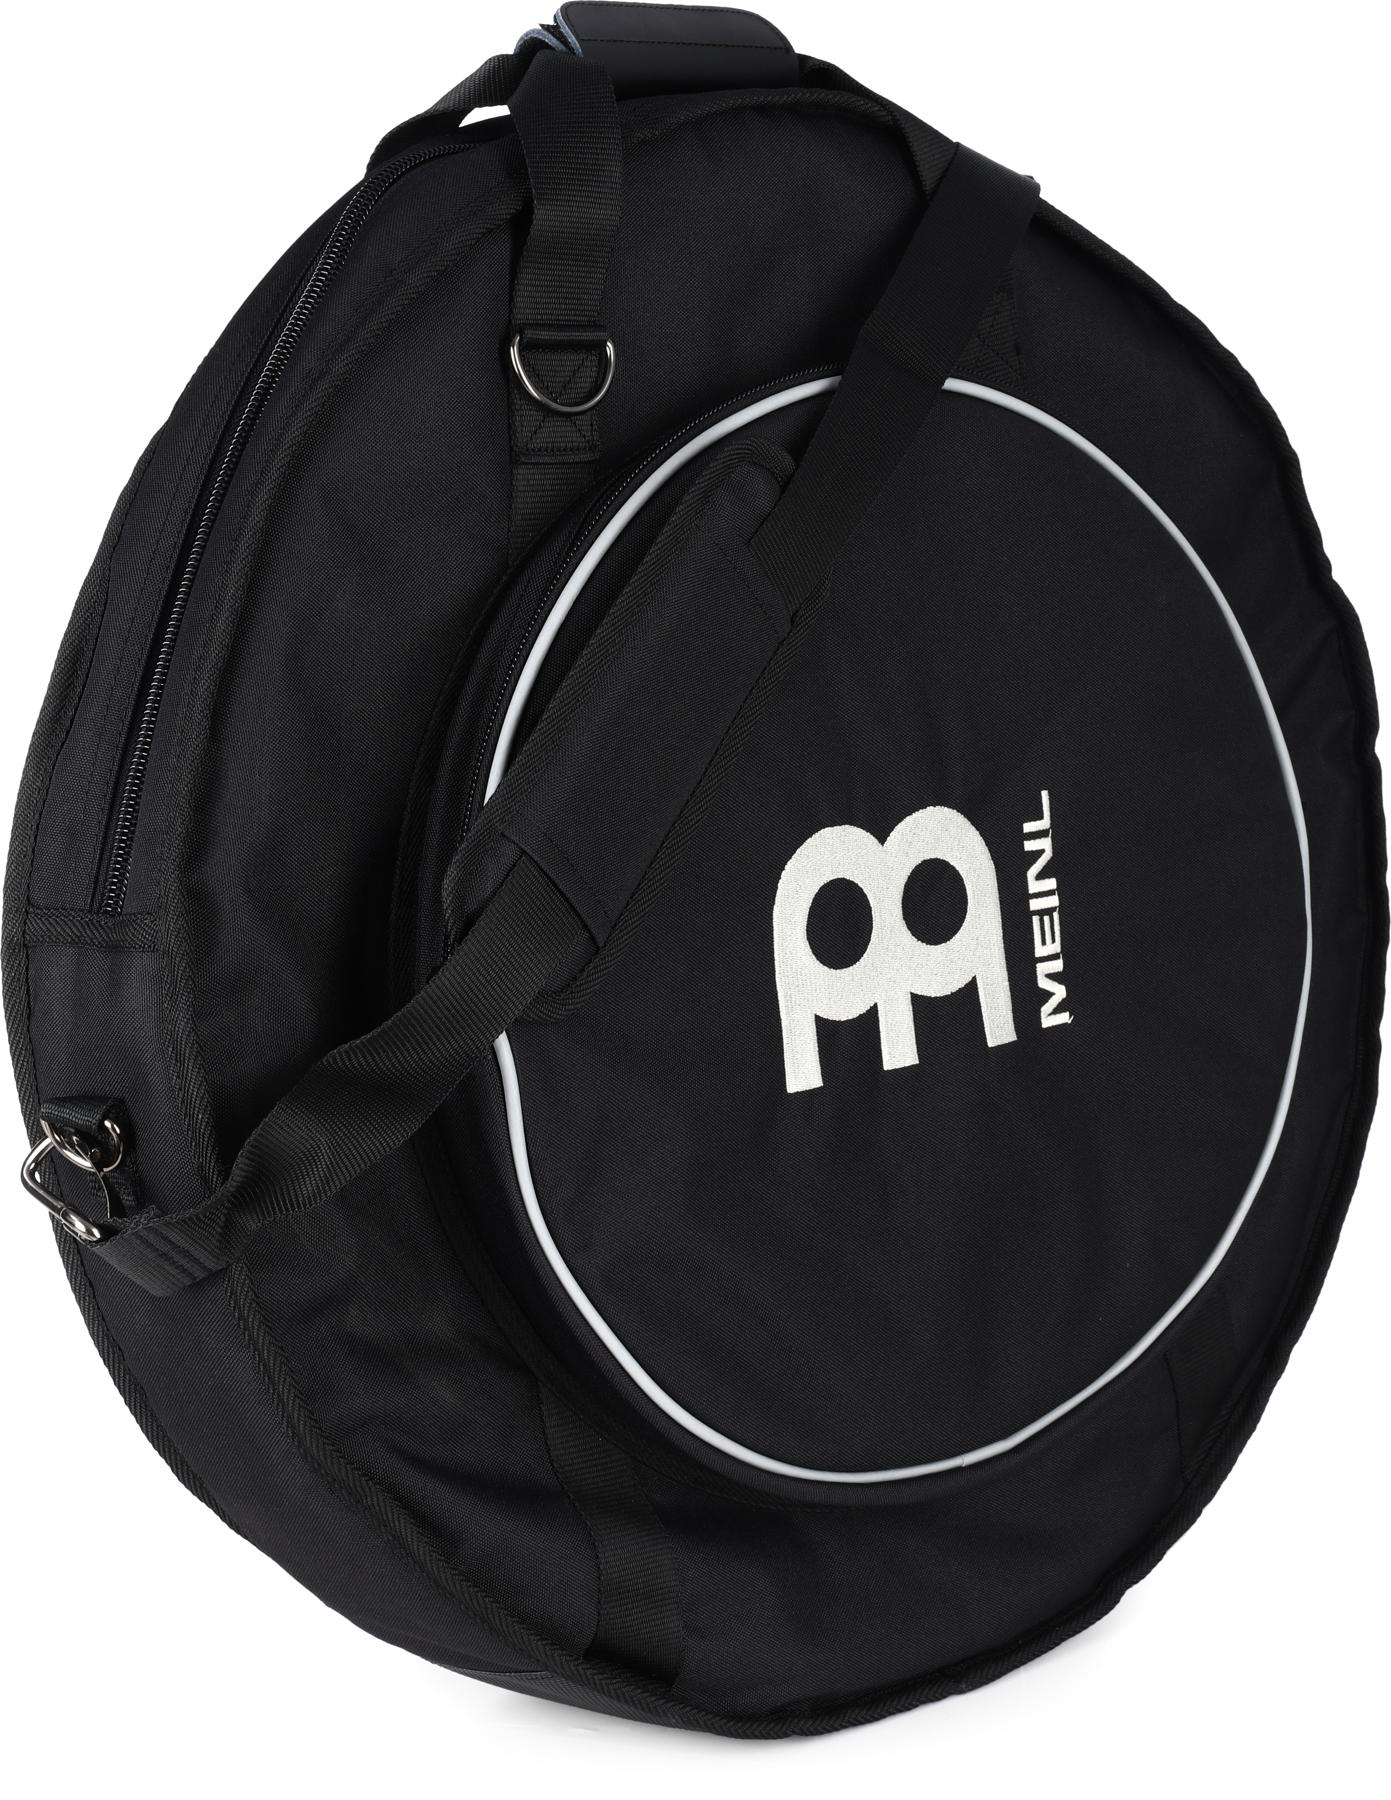 Meinl Cymbals Professional Cymbal Bag 22""